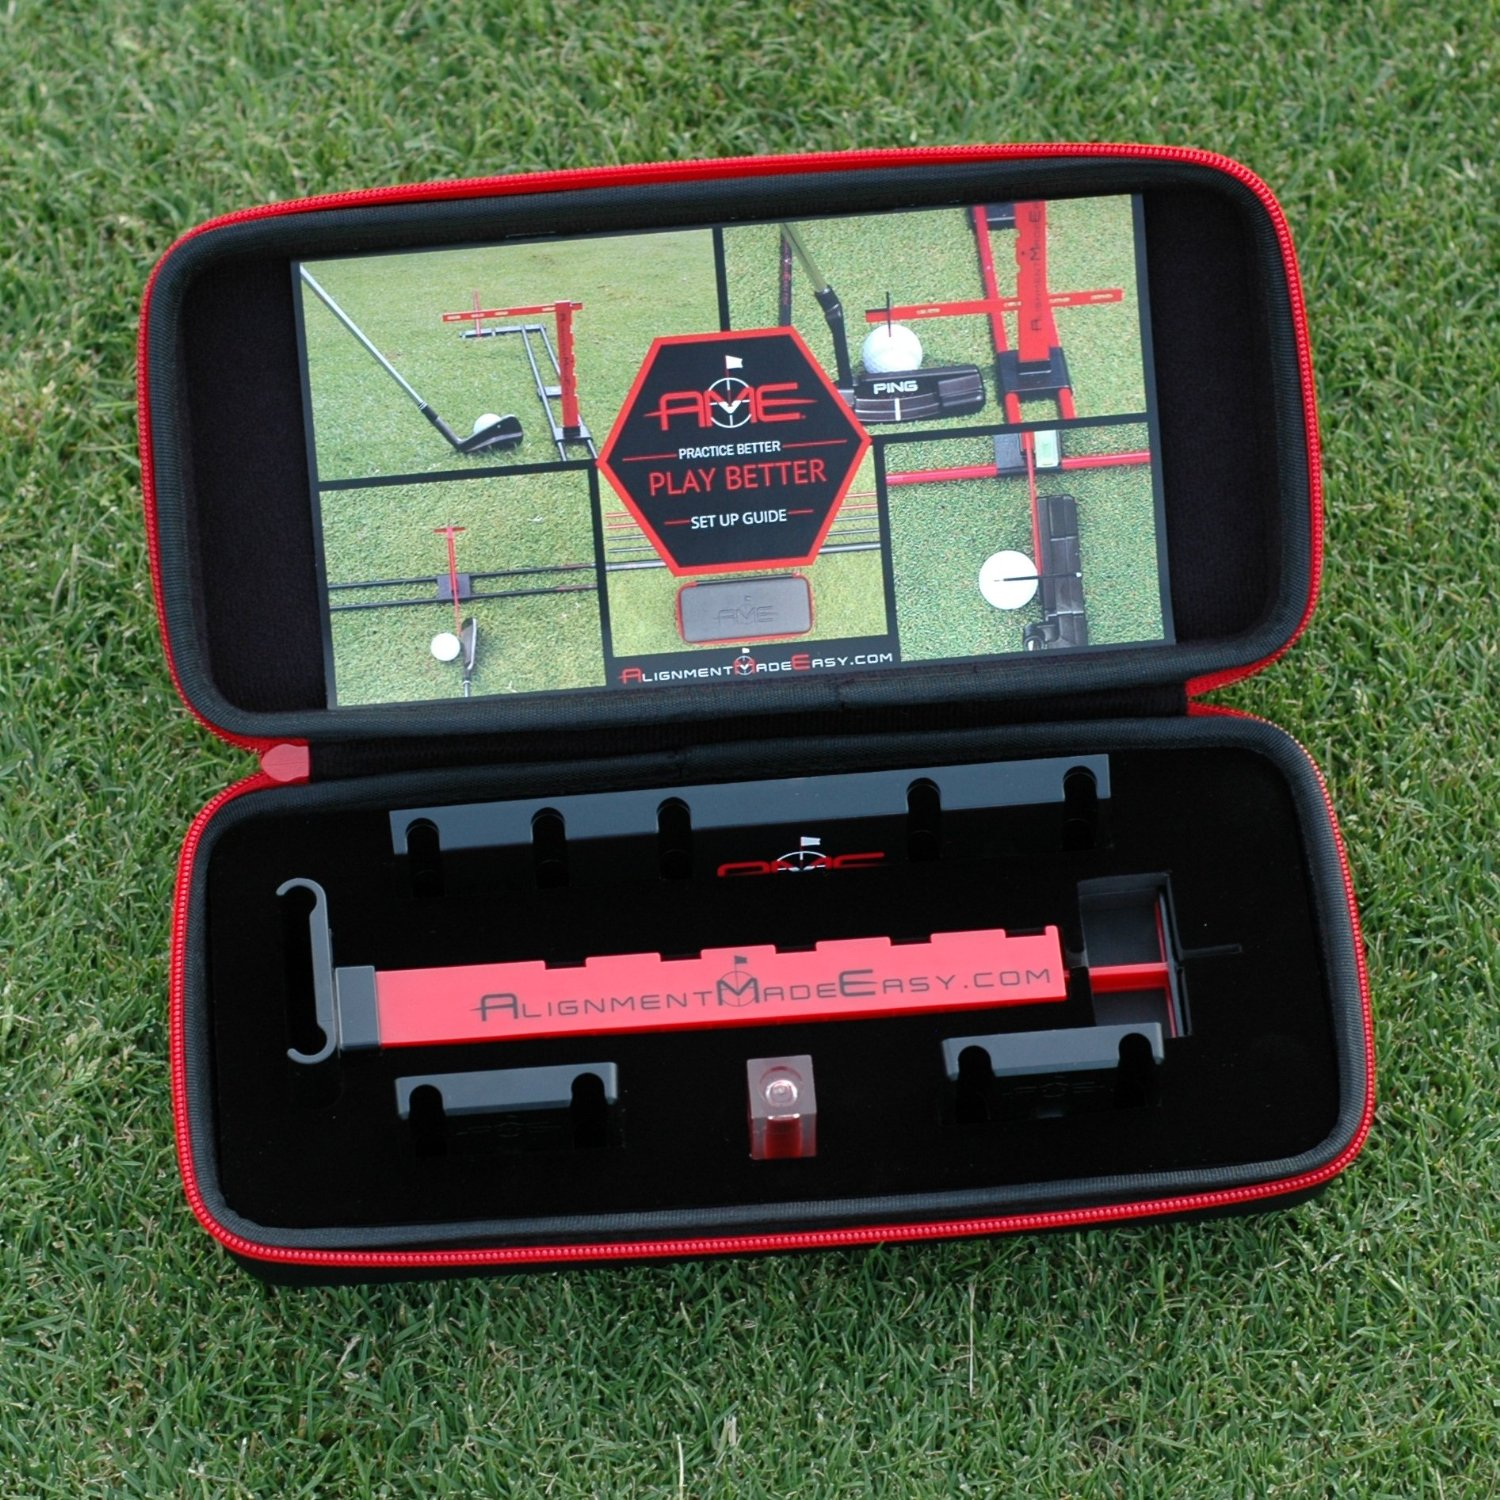 Alignment Made Easy Golf Putting Training Aids